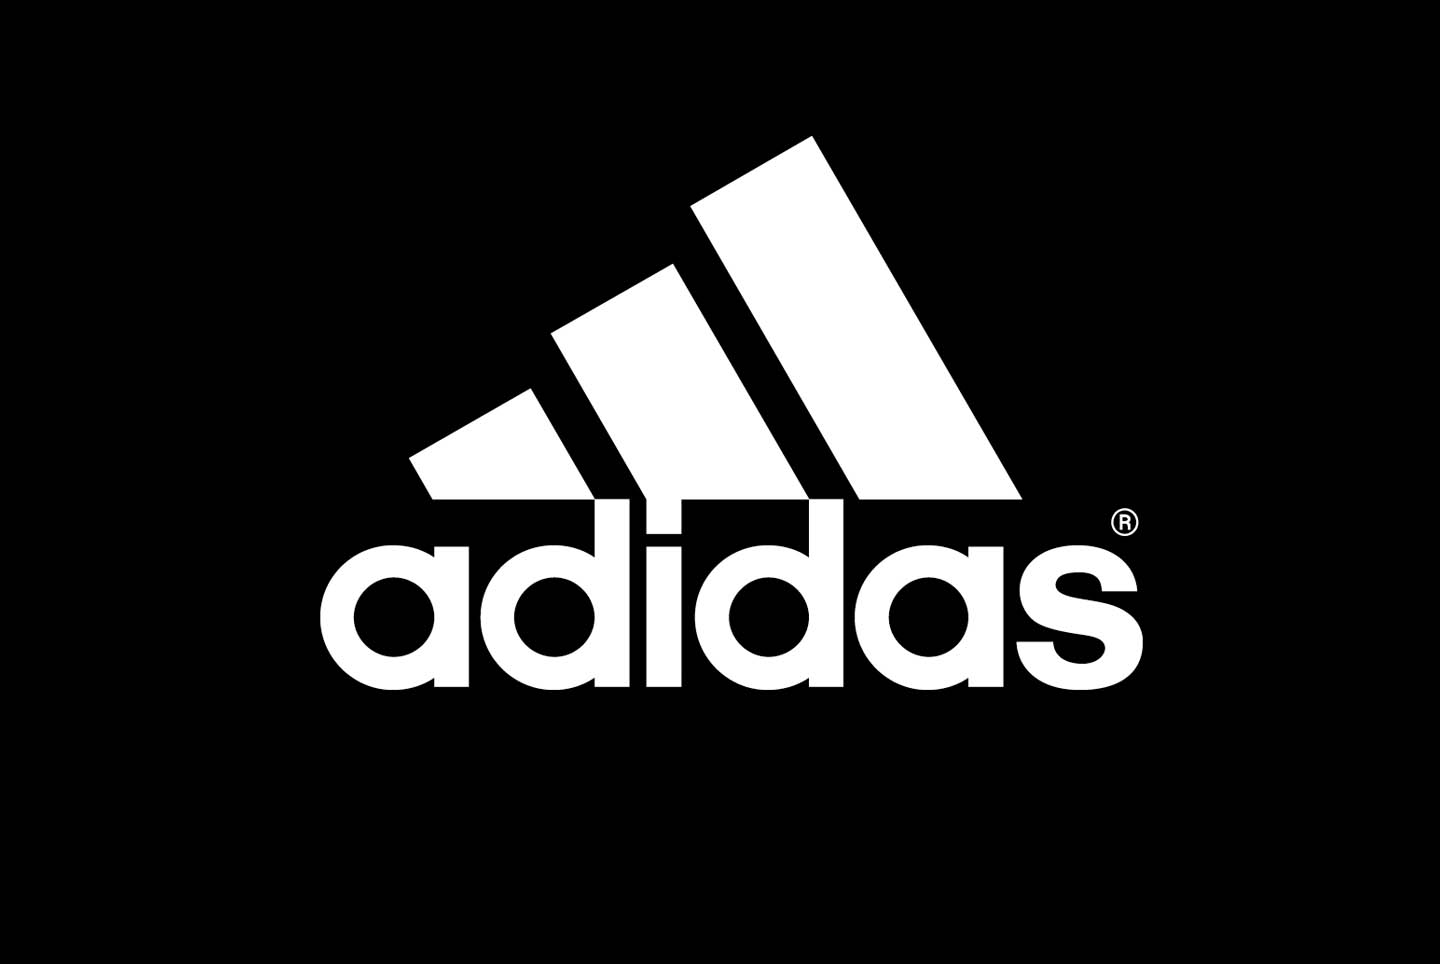 Adidas Logo Black Background Wallpaper Download